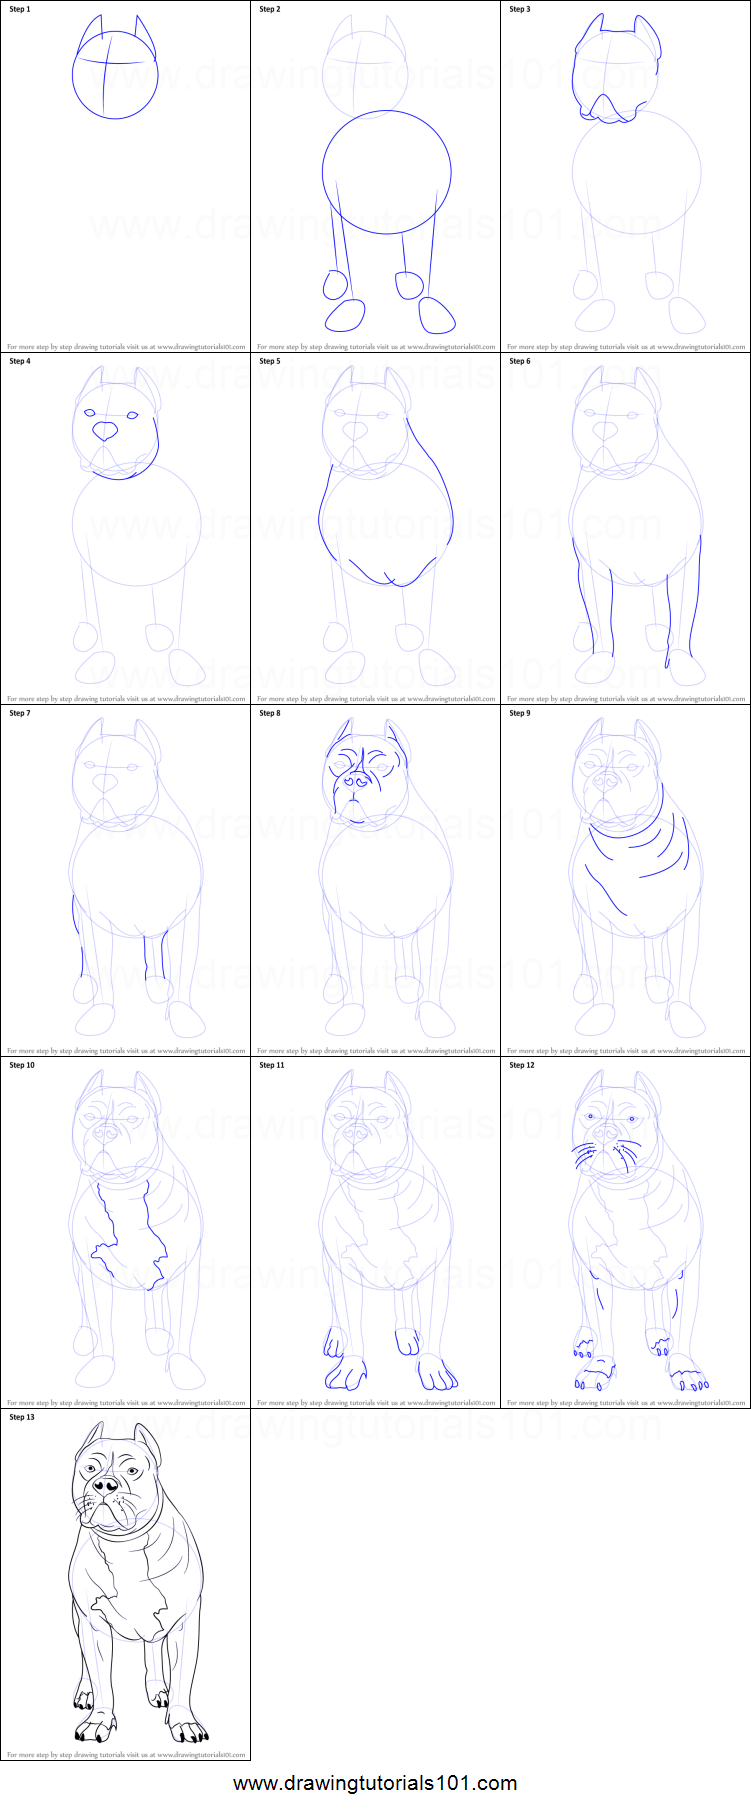 Uncategorized How To Draw A Pitbull Step By Step how to draw a pitbull printable step by drawing sheet drawingtutorials101 com